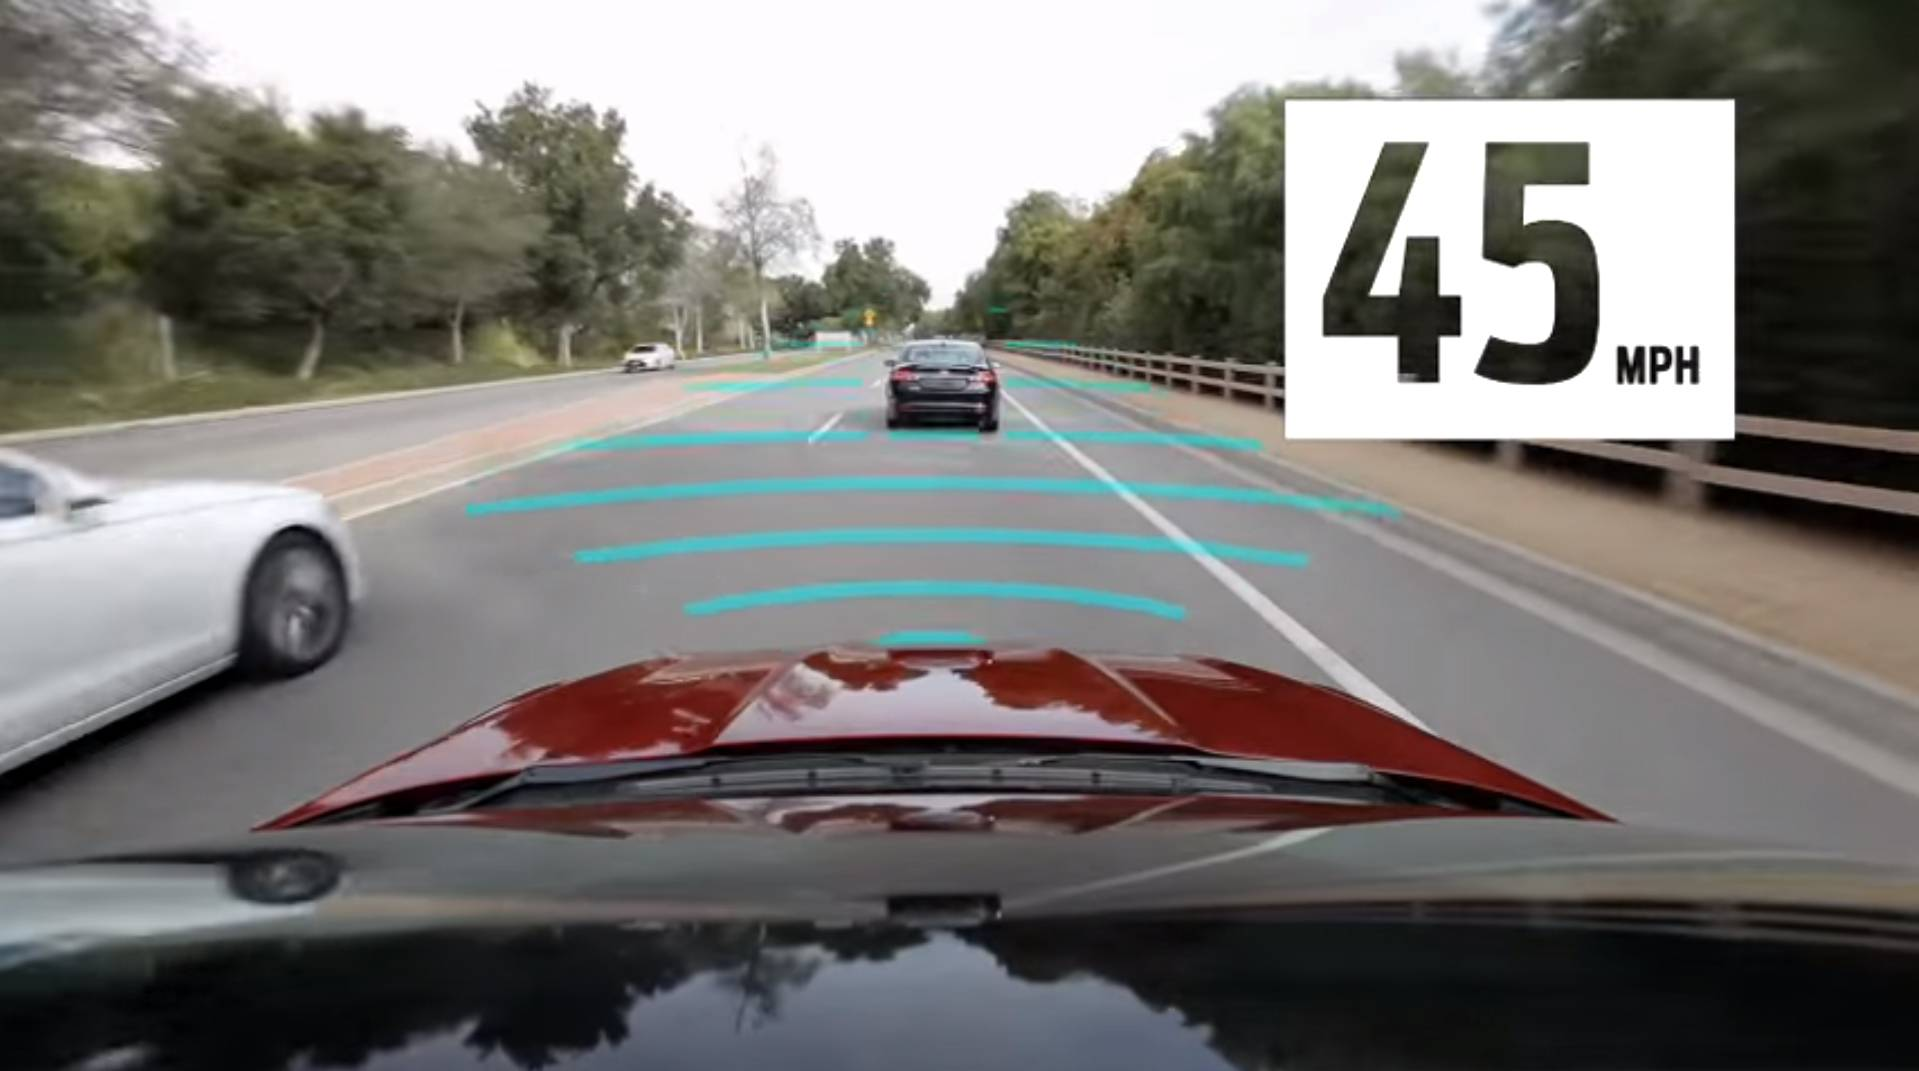 Ford says its adaptive cruise control technology that supports stop-and-go traffic.